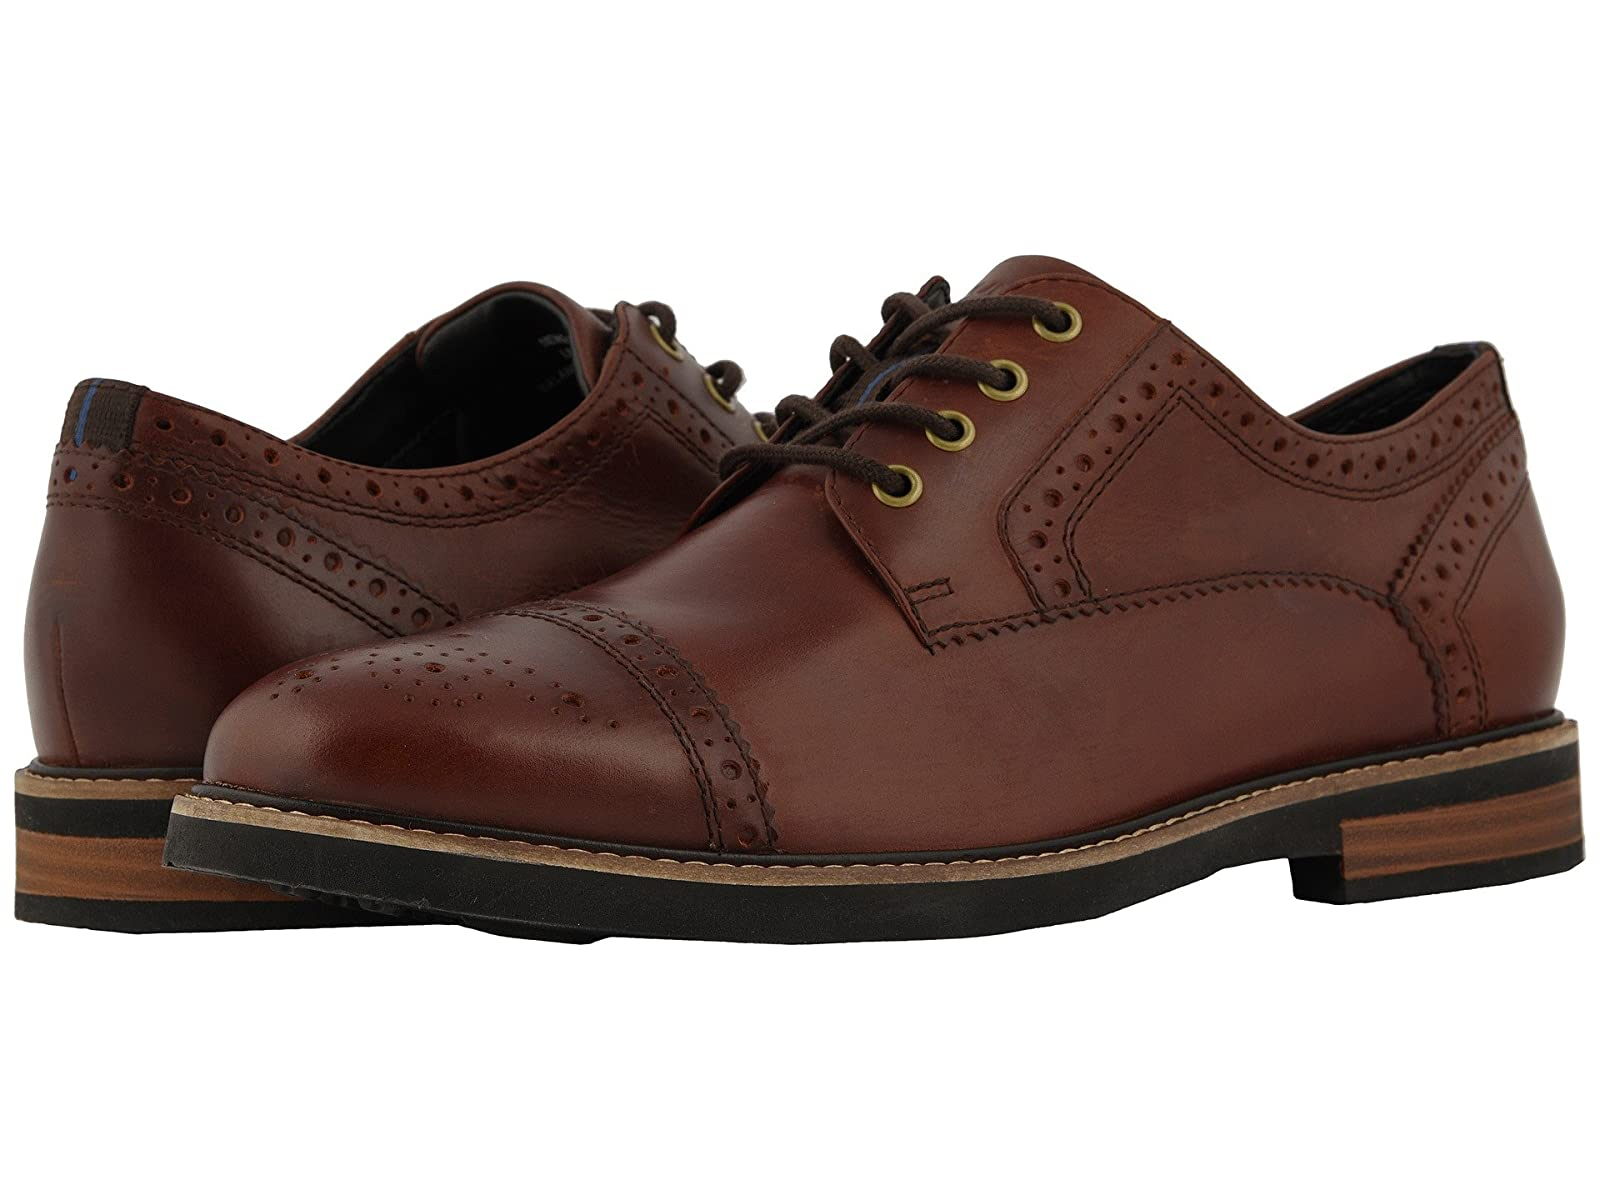 Nunn Bush Overland Cap Toe Oxford with KORE Walking Comfort TechnologyAtmospheric grades have affordable shoes